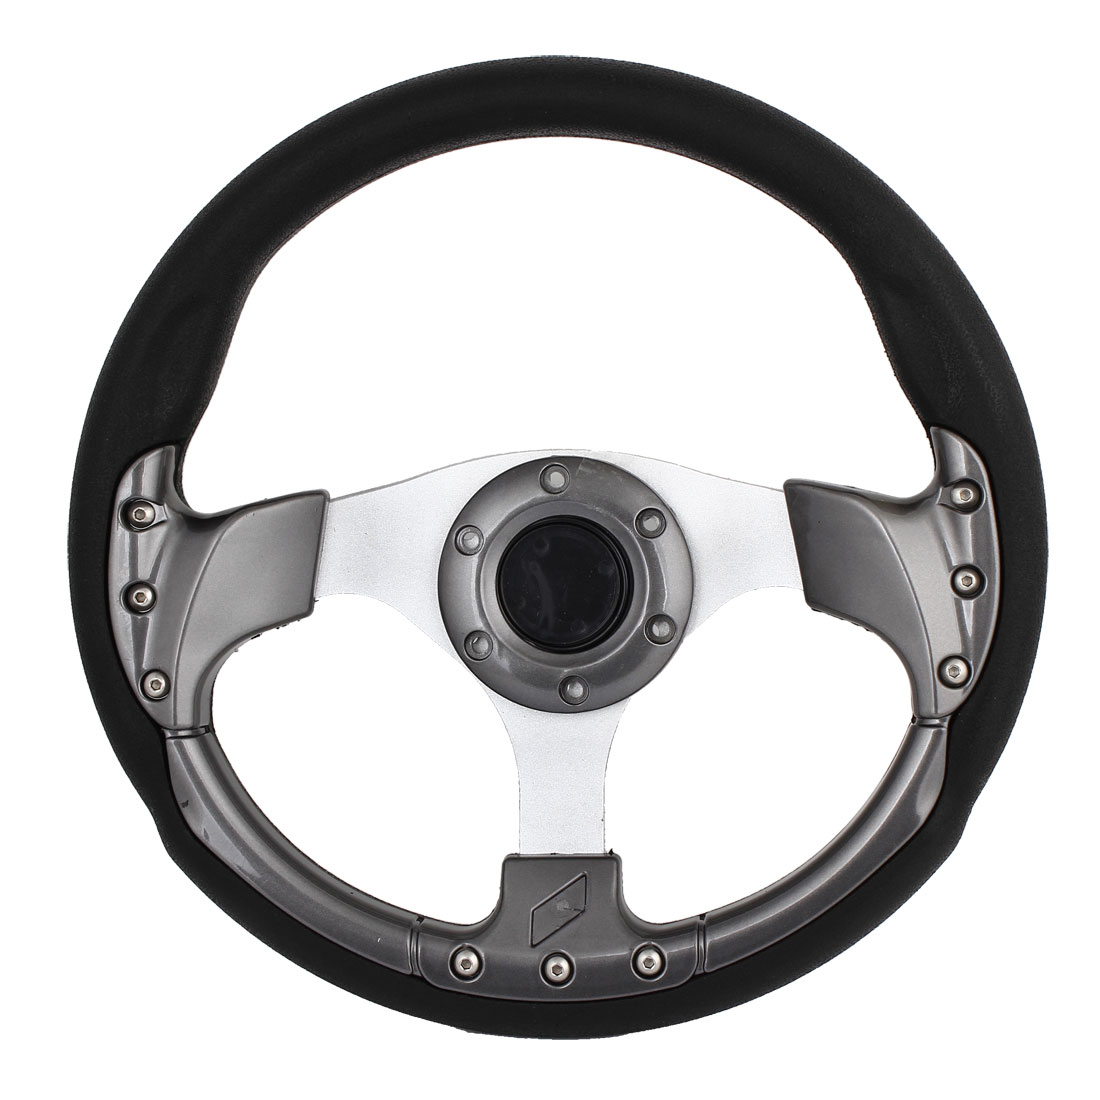 32cm Dia Gary Black Plastic Faux Leather Coated Racing Steering Wheel Spare Part for Car